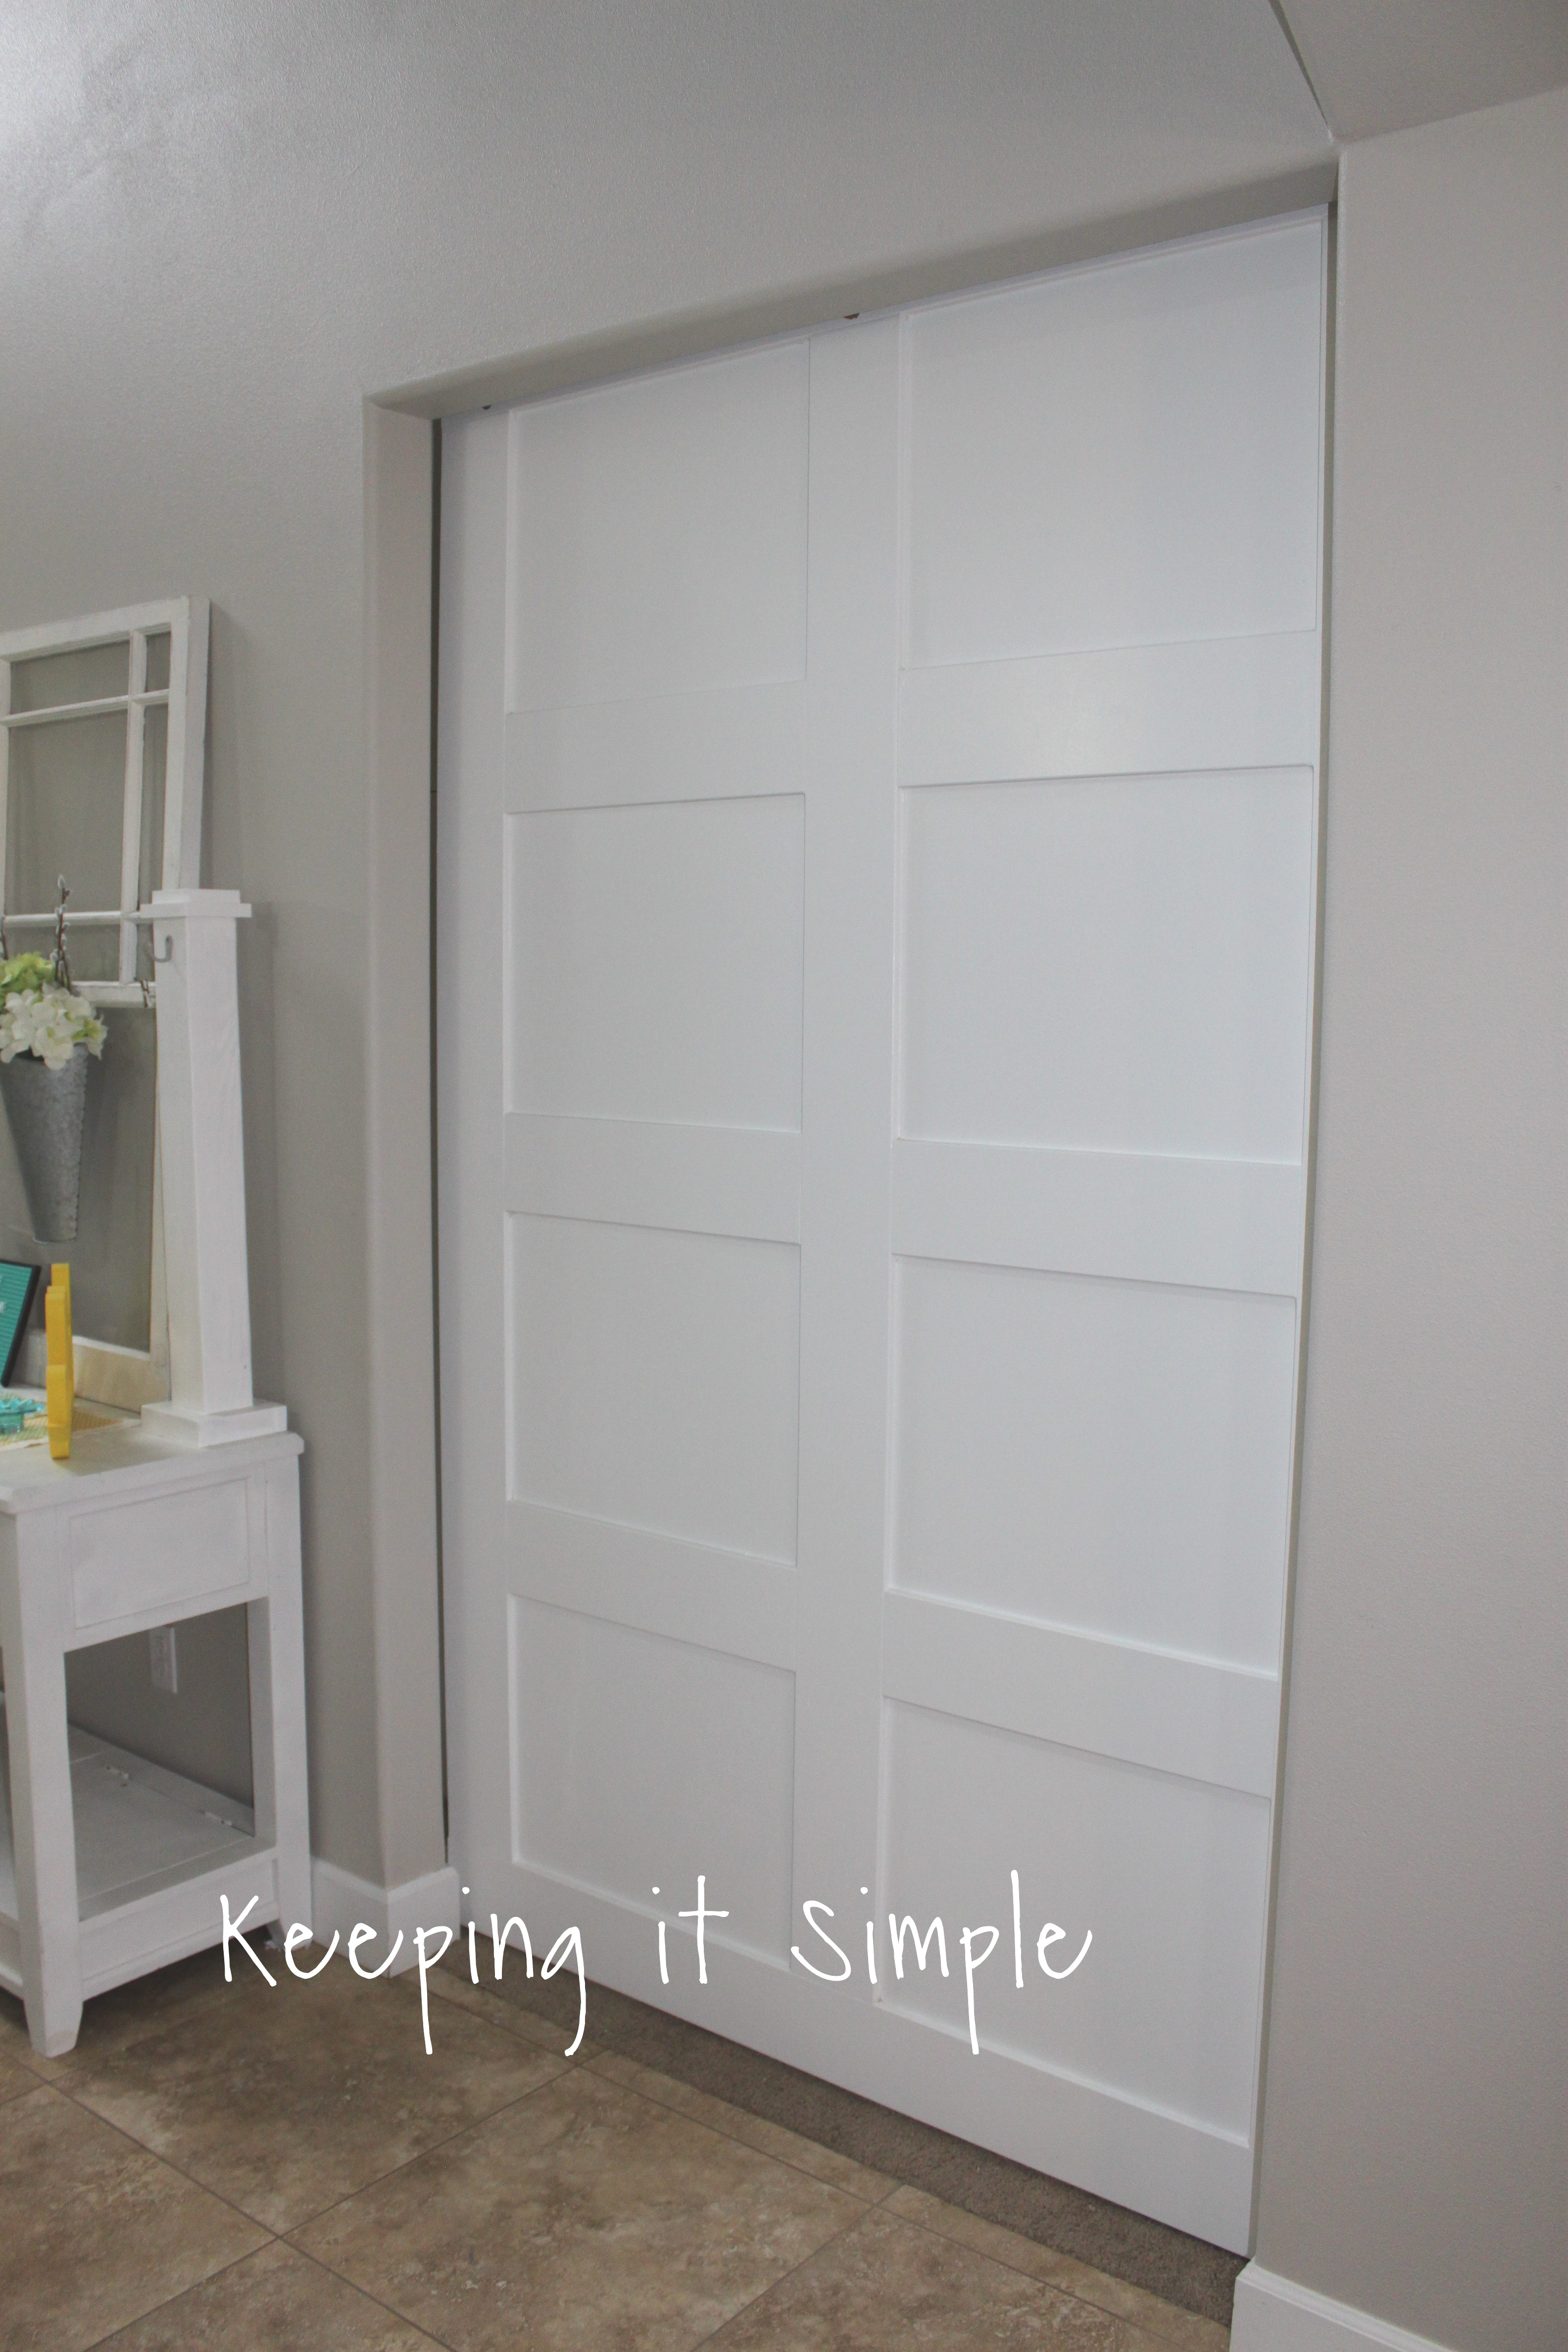 barn doors sliding stainless finish wood steel modern new photo hardware storage mirror handle with product door text